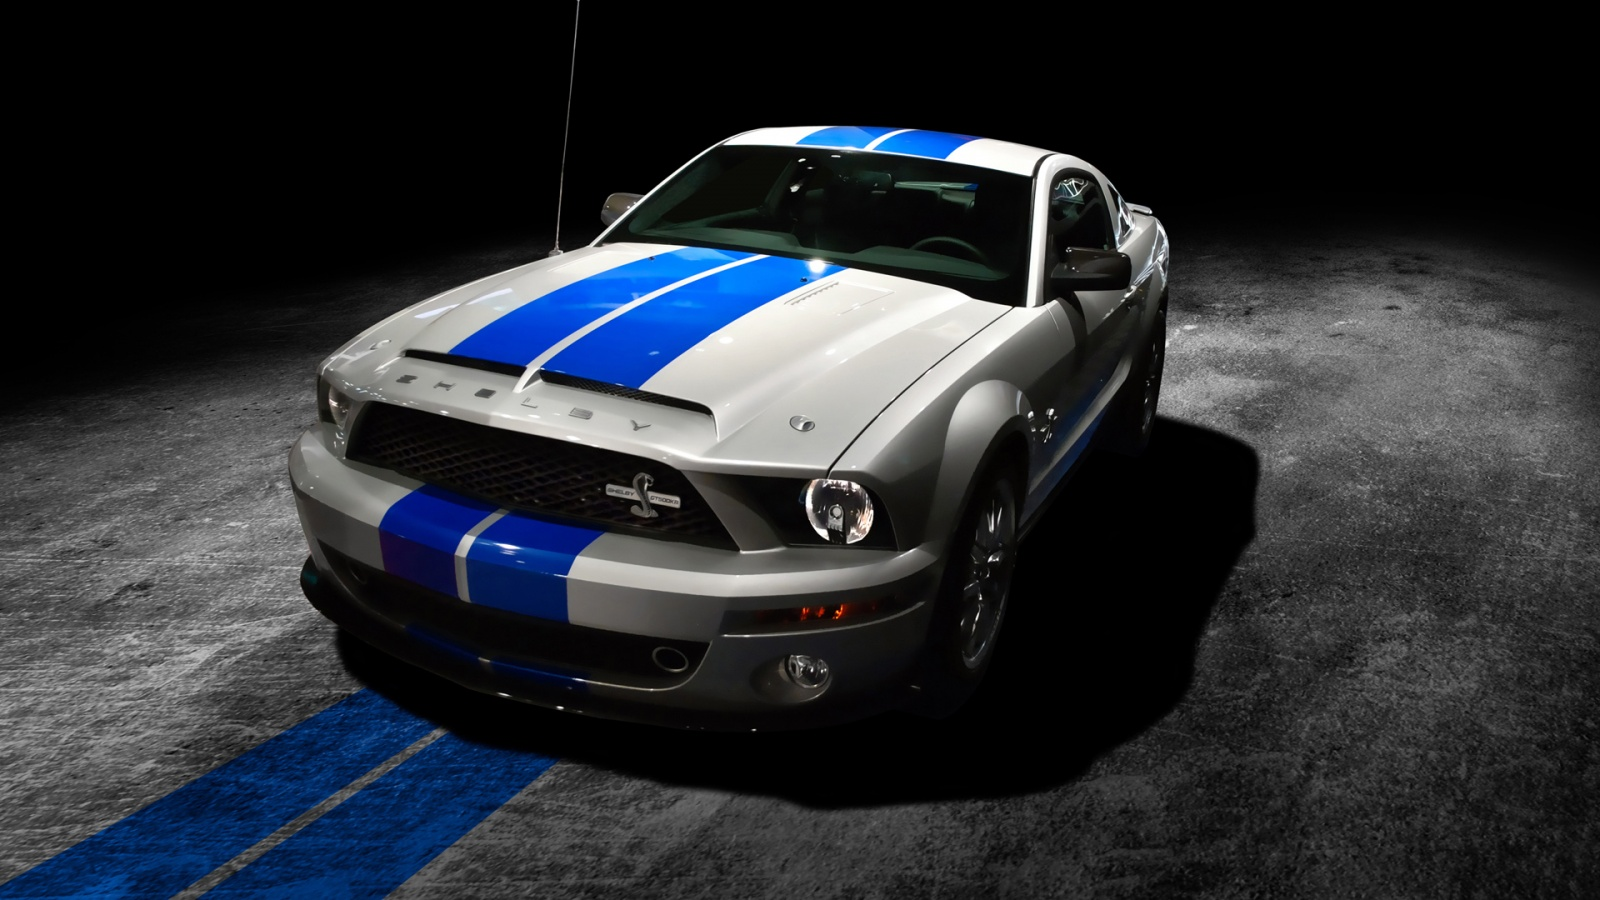 Ford Mustang Shelby Gt500 2013 Wallpapers In Jpg Format For Free